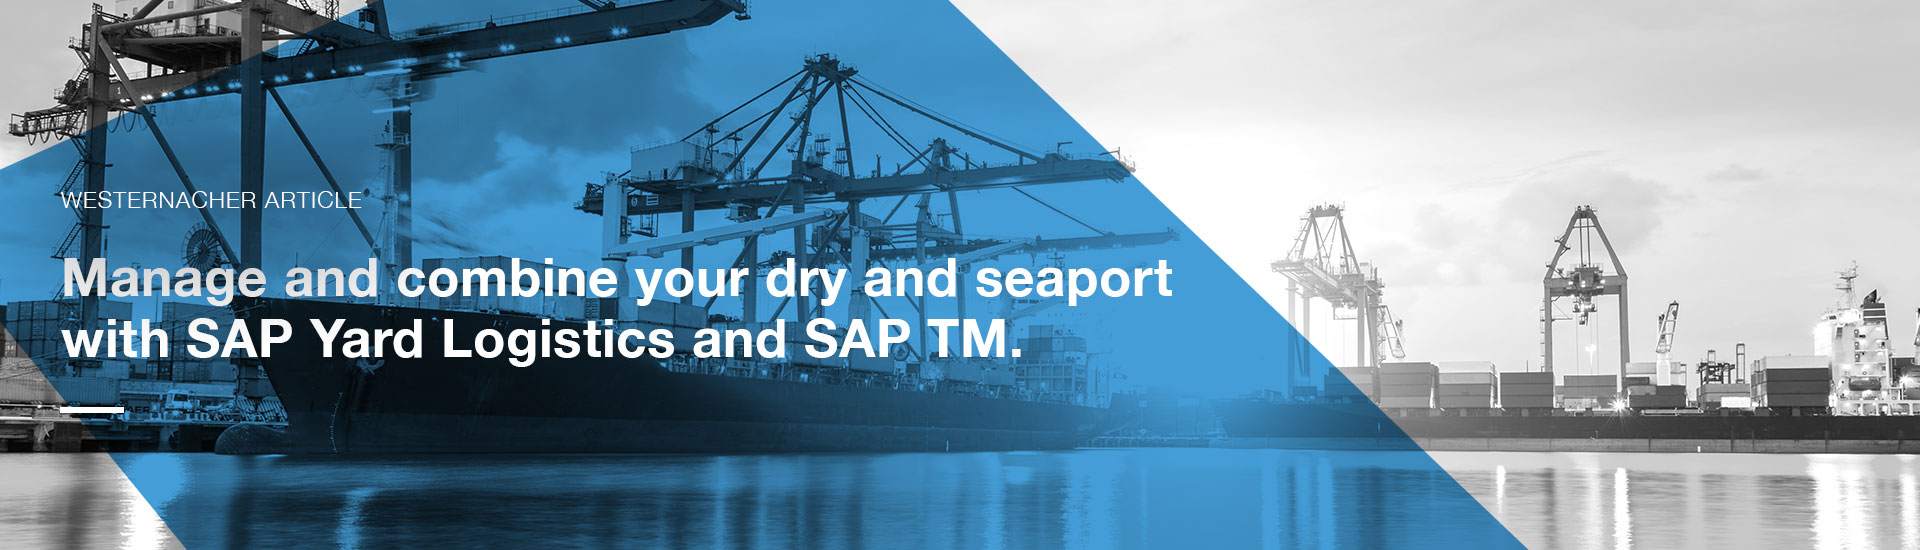 Manage and combine your dry and seaport with SAP Yard Logistics and SAP TM | westernacher-consulting.com